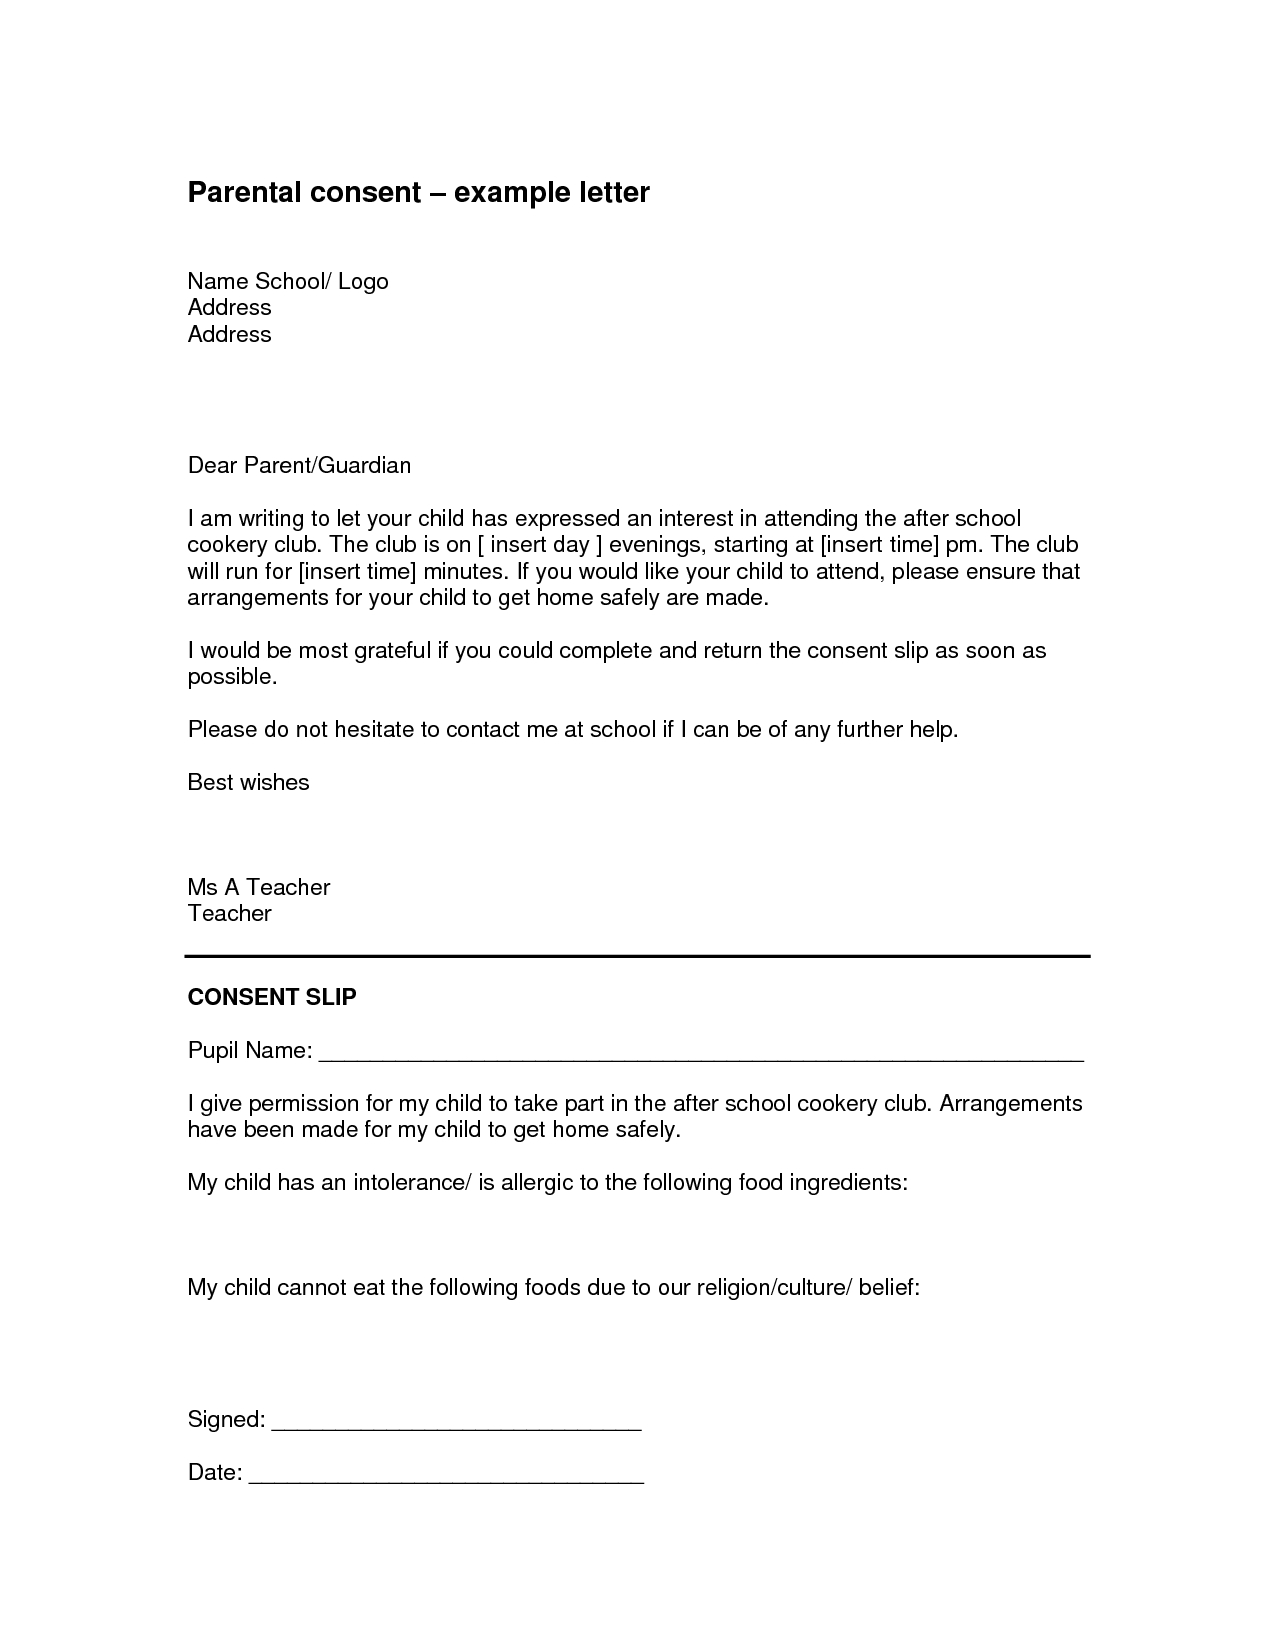 Child Travel Consent Letter Template - Parental Authorization Letter for Example Children Travelling